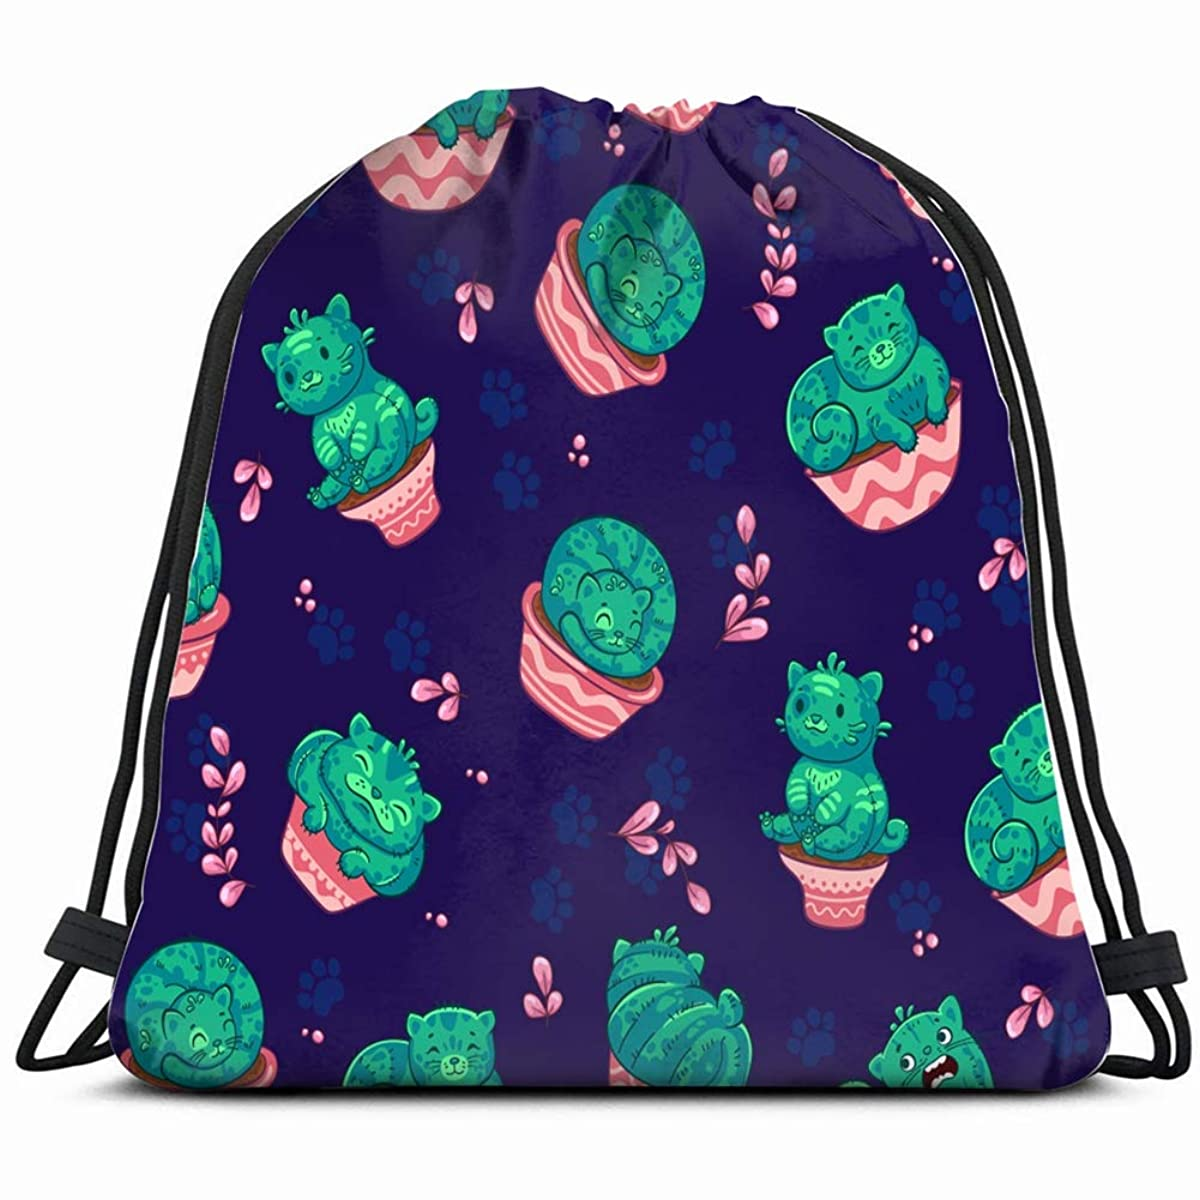 seamless pattern cats cactus flowerpot cartoon animals wildlife backgrounds textures Drawstring Backpack Gym Spacious Pull String Backpack Multifunctional storage bag 14.2 x 16.9 inch